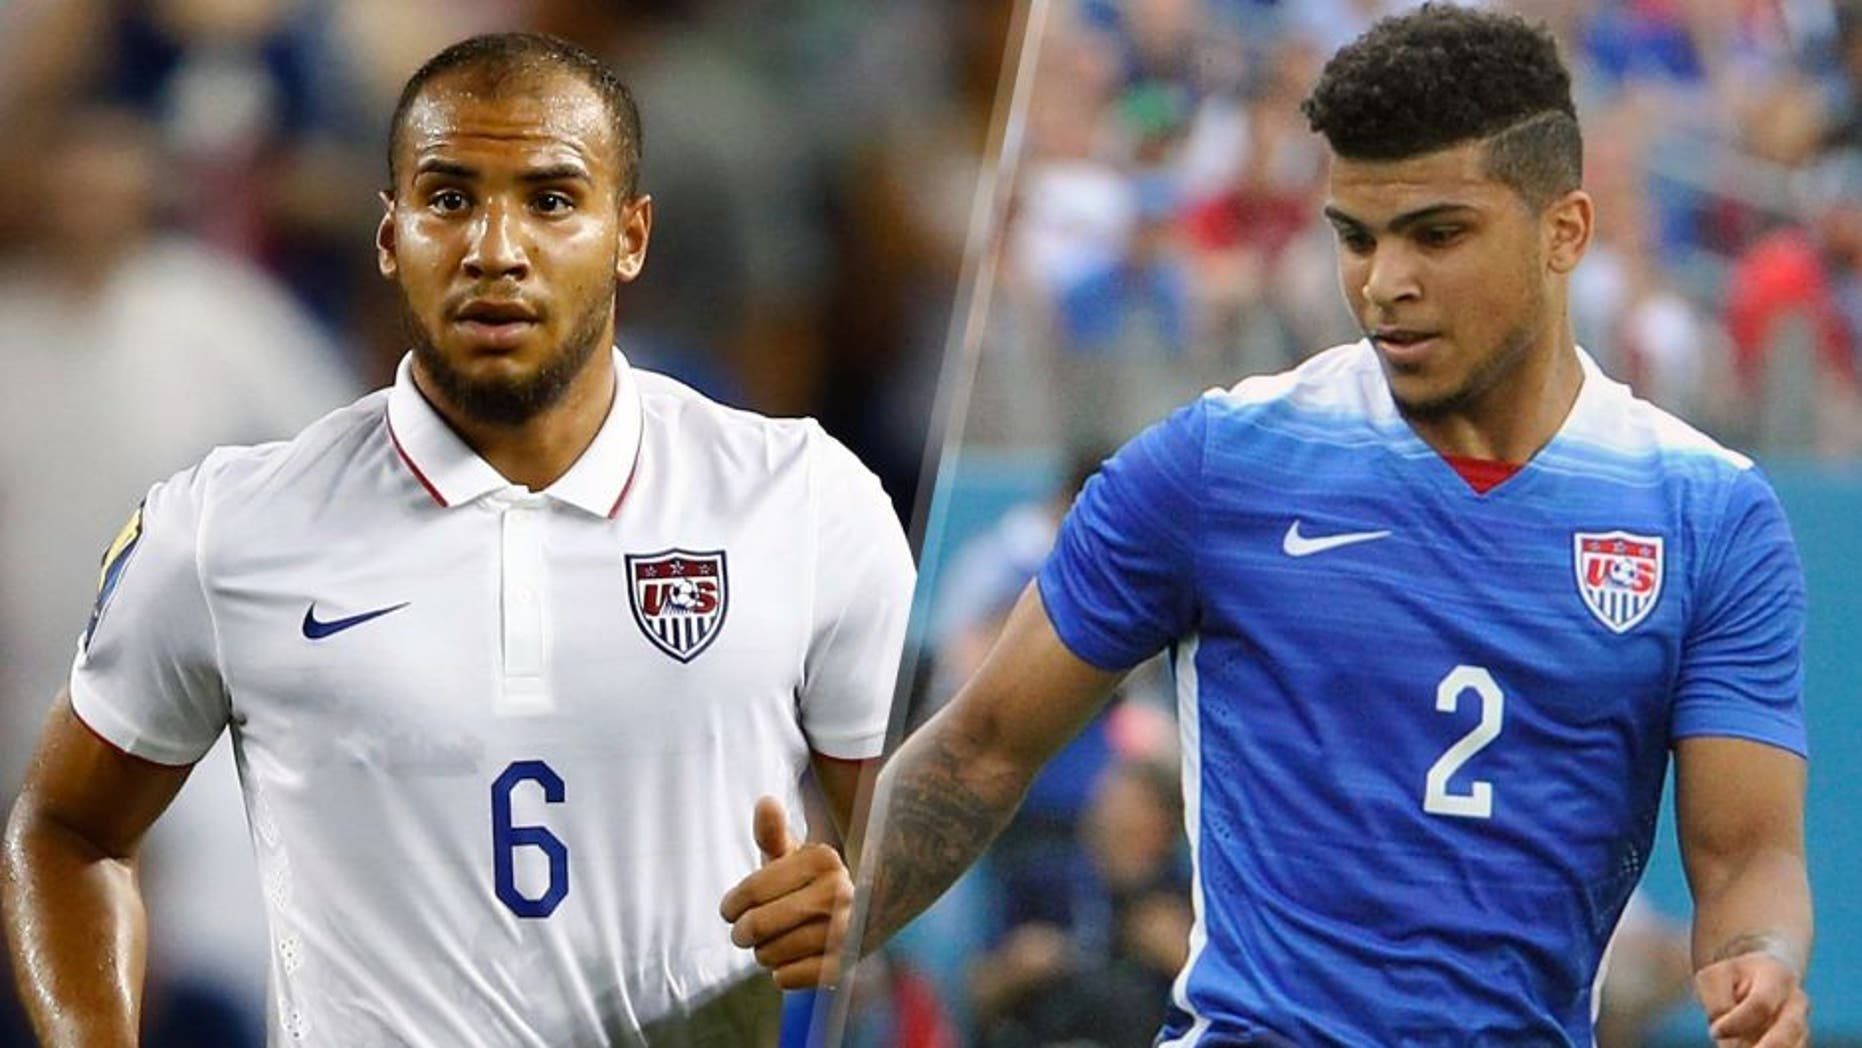 KANSAS CITY, KS - JULY 13: John Brooks #6 of the United States in action during the CONCACAF Gold Cup match against Panama at Sporting Park on July 13, 2015 in Kansas City, Kansas. (Photo by Jamie Squire/Getty Images) NASHVILLE, TN - JULY 03: DeAndre Yedlin #2 of the United States Men's National team plays against Guatemala in an international friendly match at Nissan Stadium on July 3, 2015 in Nashville, Tennessee. (Photo by Frederick Breedon/Getty Images)